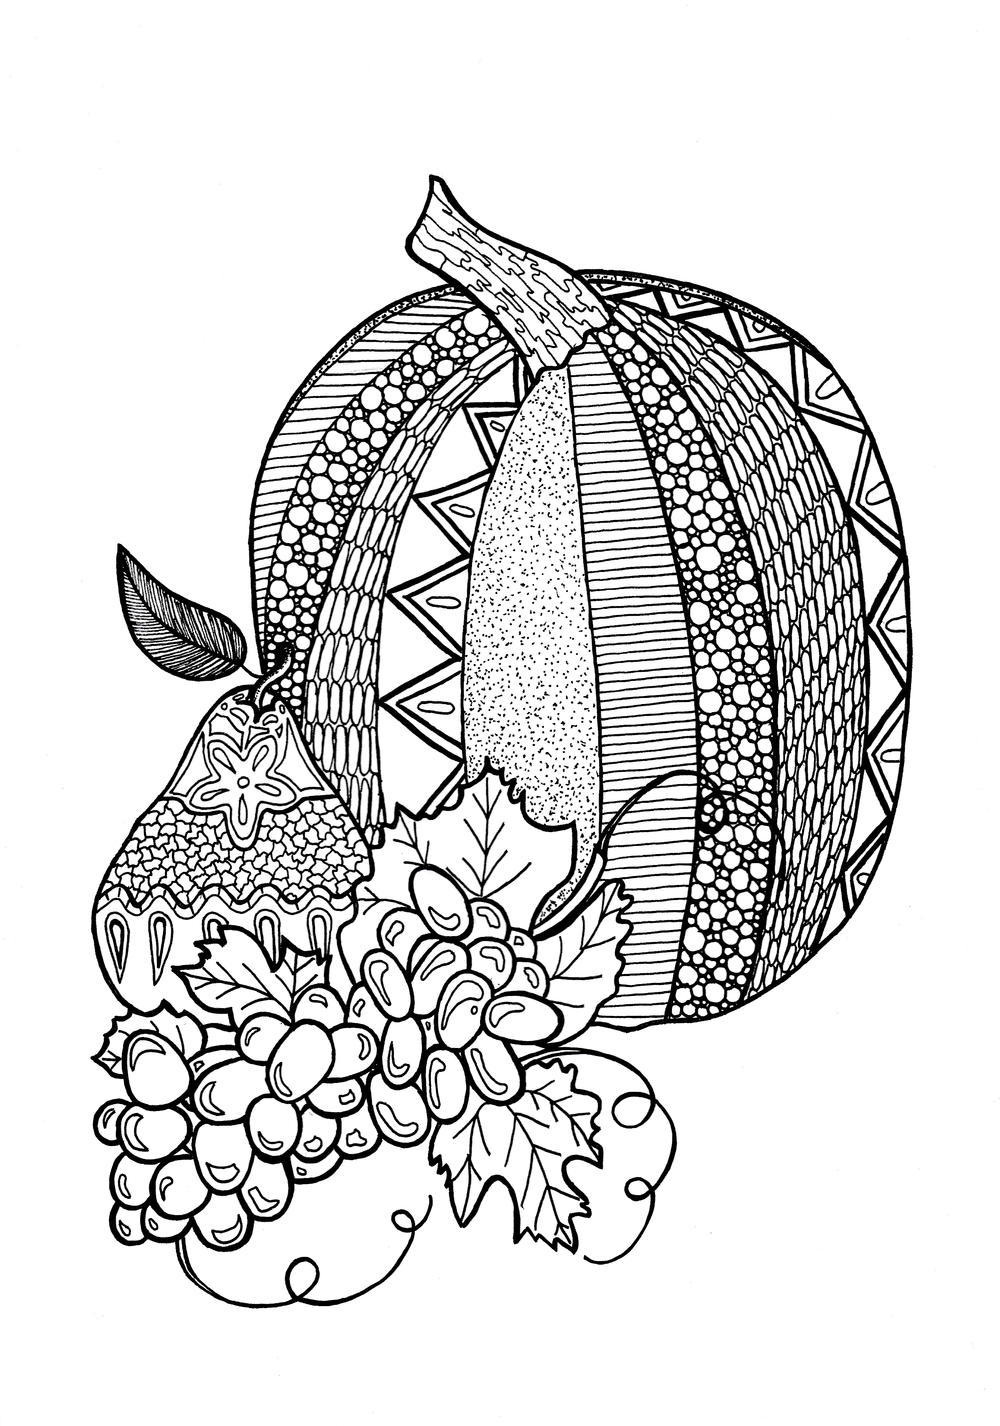 pumkin coloring page textured pumpkin adult coloring page allfreepapercraftscom pumkin page coloring